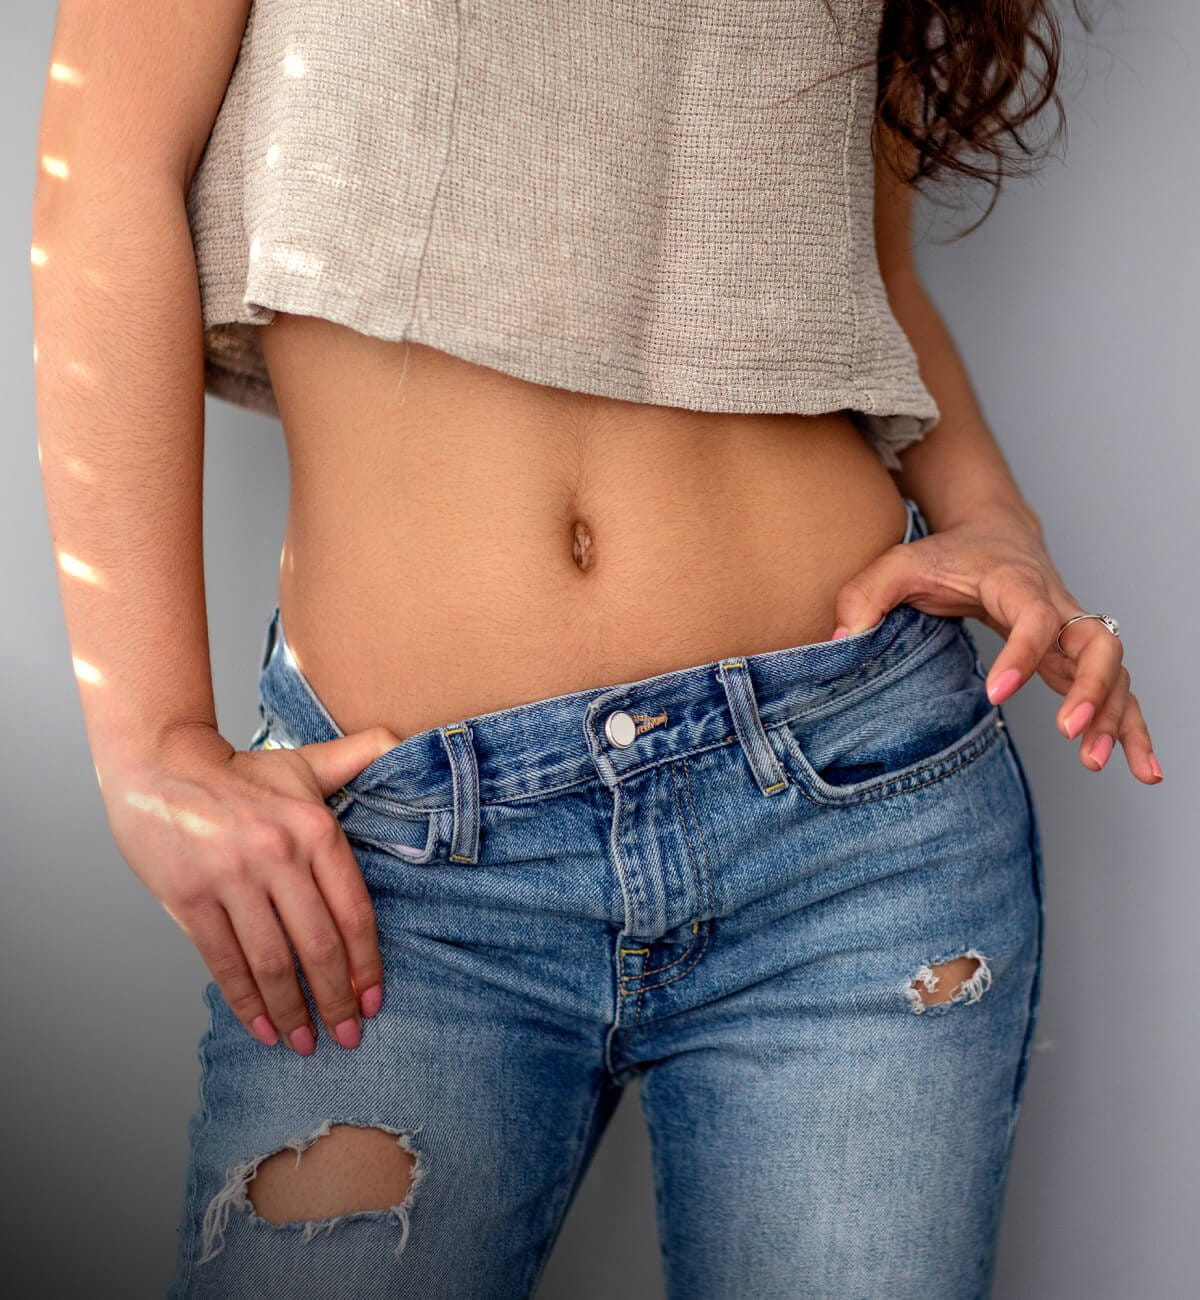 Liposuction Philadelphia